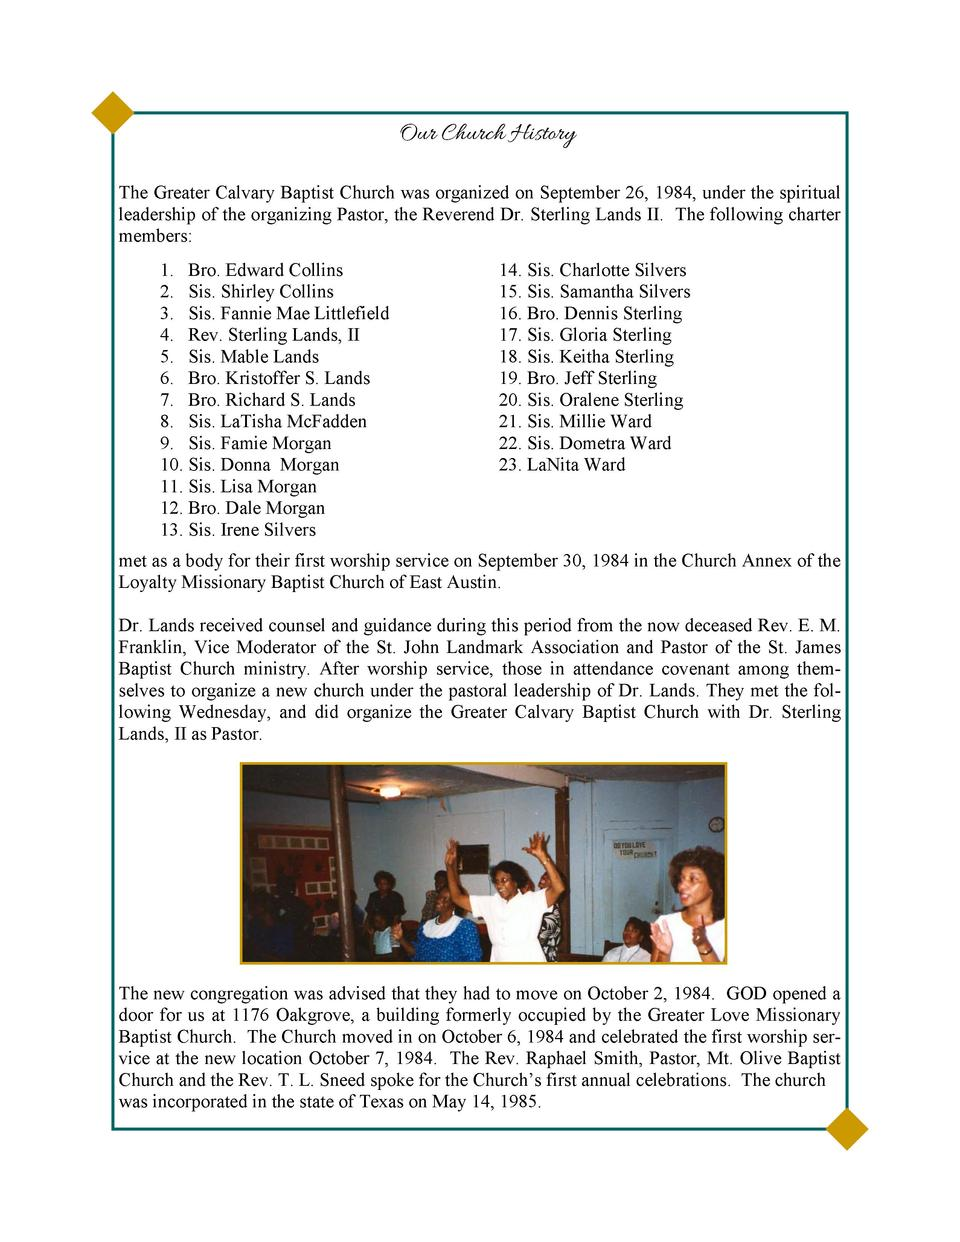 Our Church History The Greater Calvary Baptist Church was organized on September 26, 1984, under the spiritual leadership ...